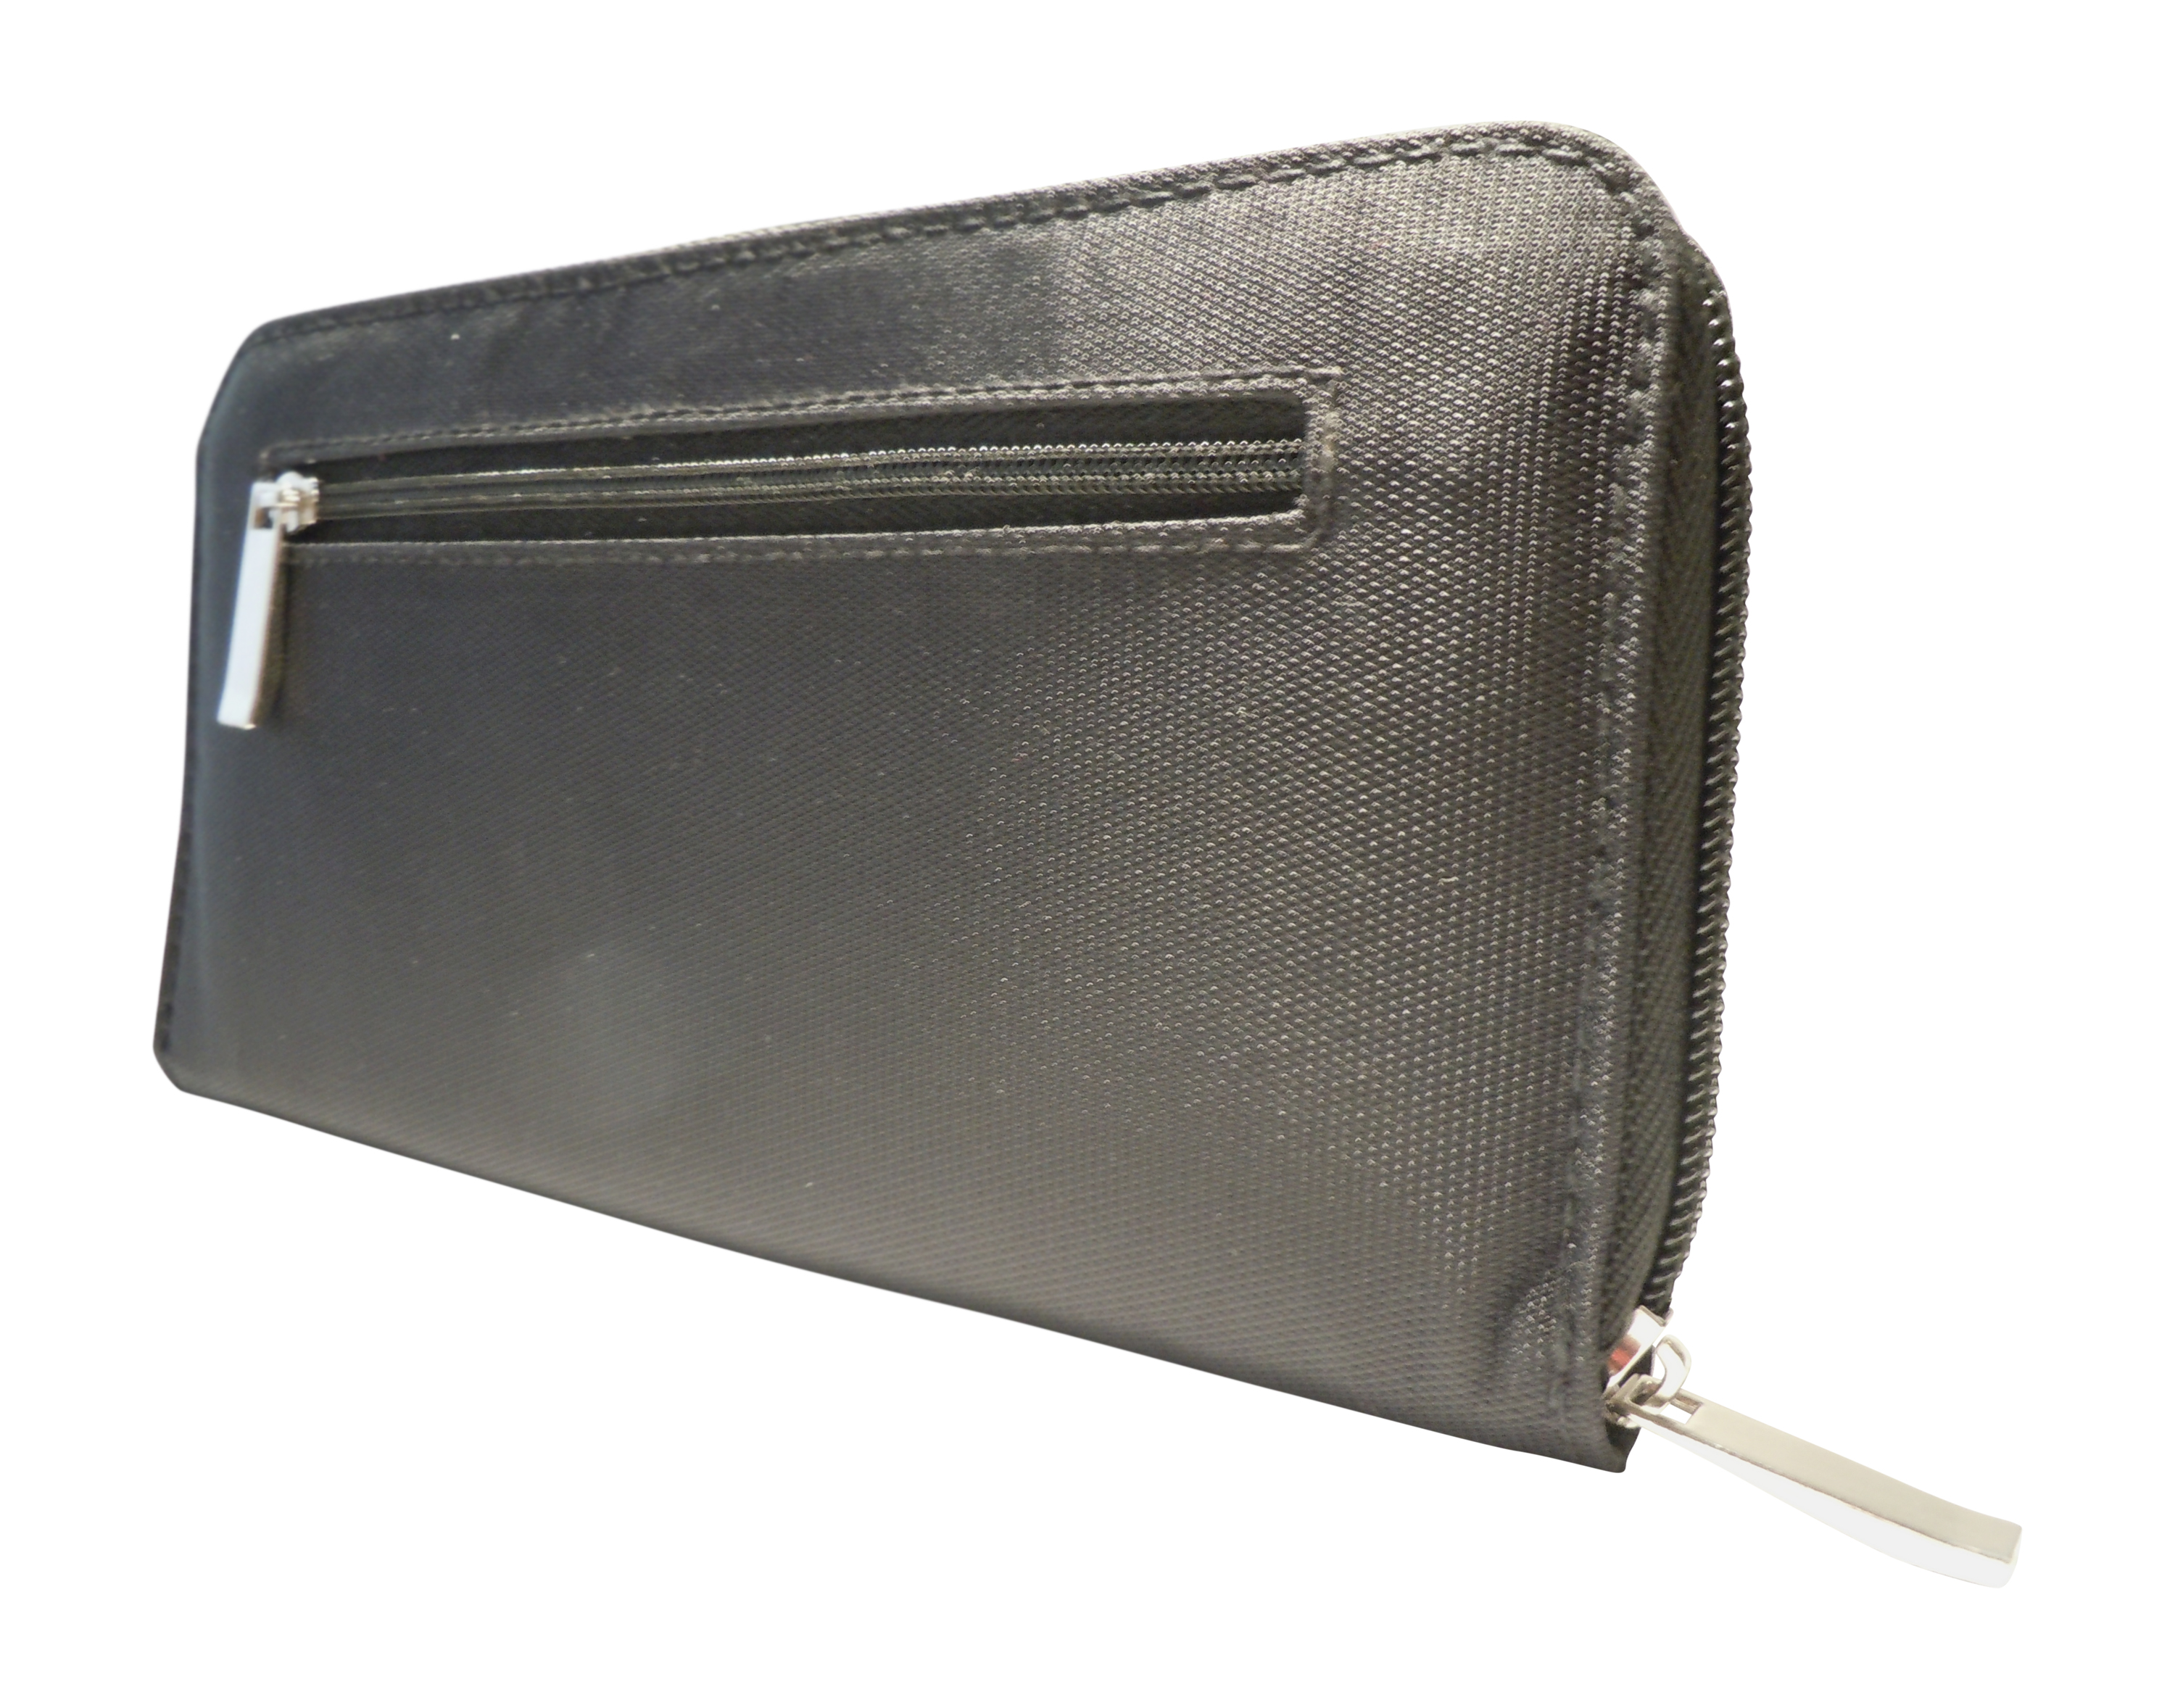 Free Shipping with $50 purchase. Explore details, ratings and reviews for our wallets & travel organizers at trueiuptaf.gq Our high-quality travel accessories are expertly designed to last.